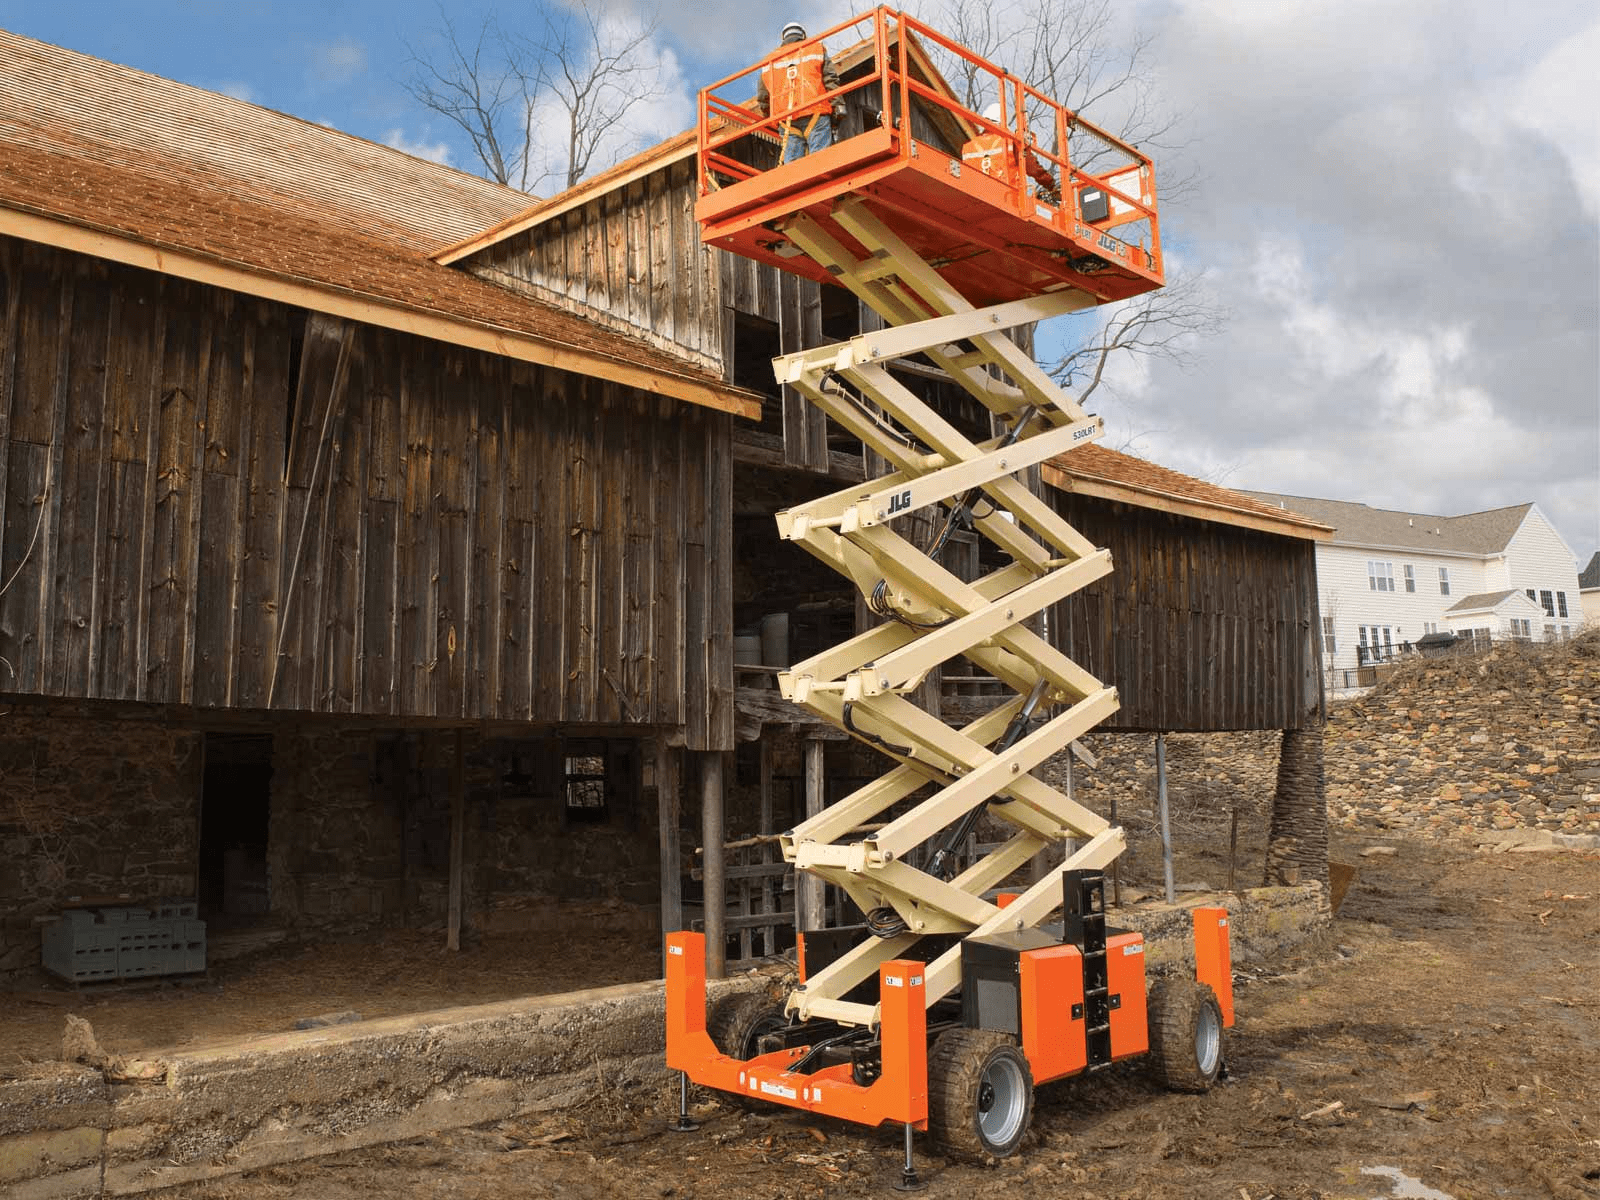 JLG 530LRT Rough Terrain Scissor Lift